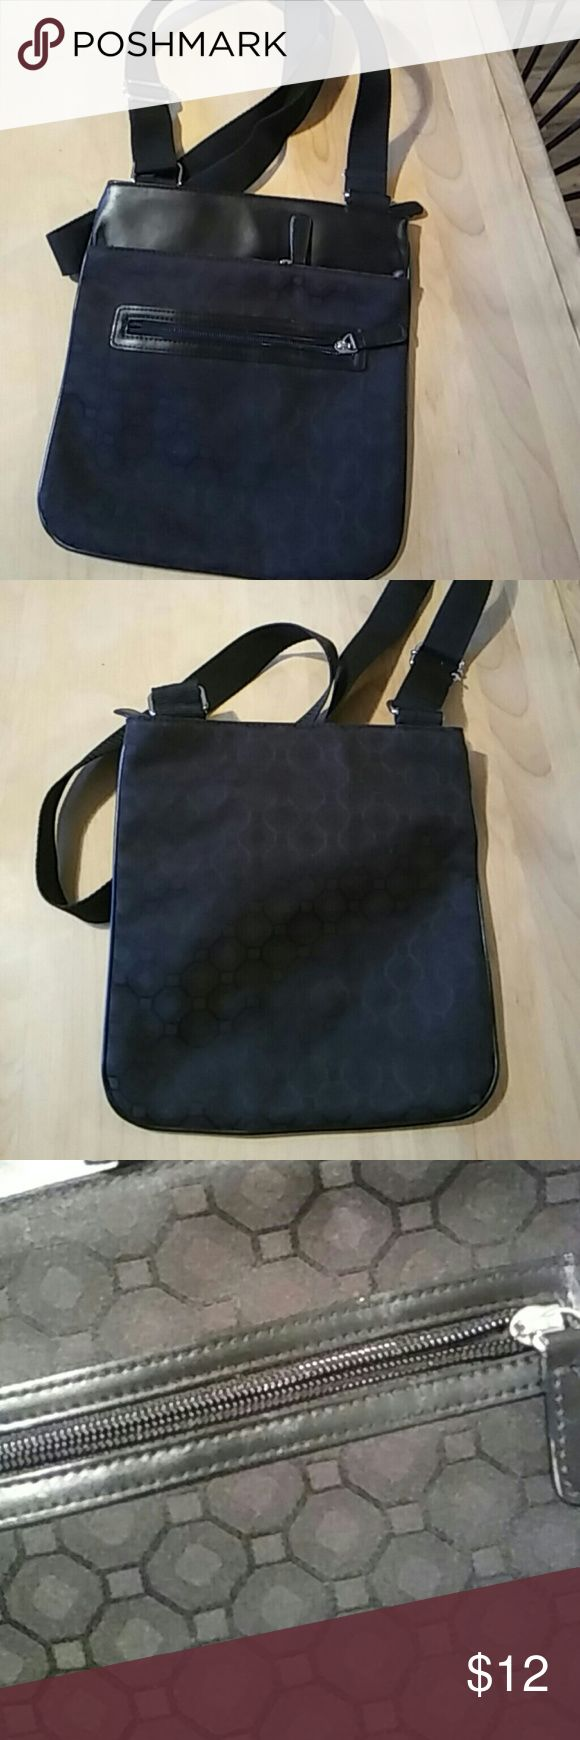 Marks And Spencer purse Like new!  Small, perfect shoulder bag, two outside pockets for phone and keys.  When you just need a small bag Marks and Spencer Bags Shoulder Bags